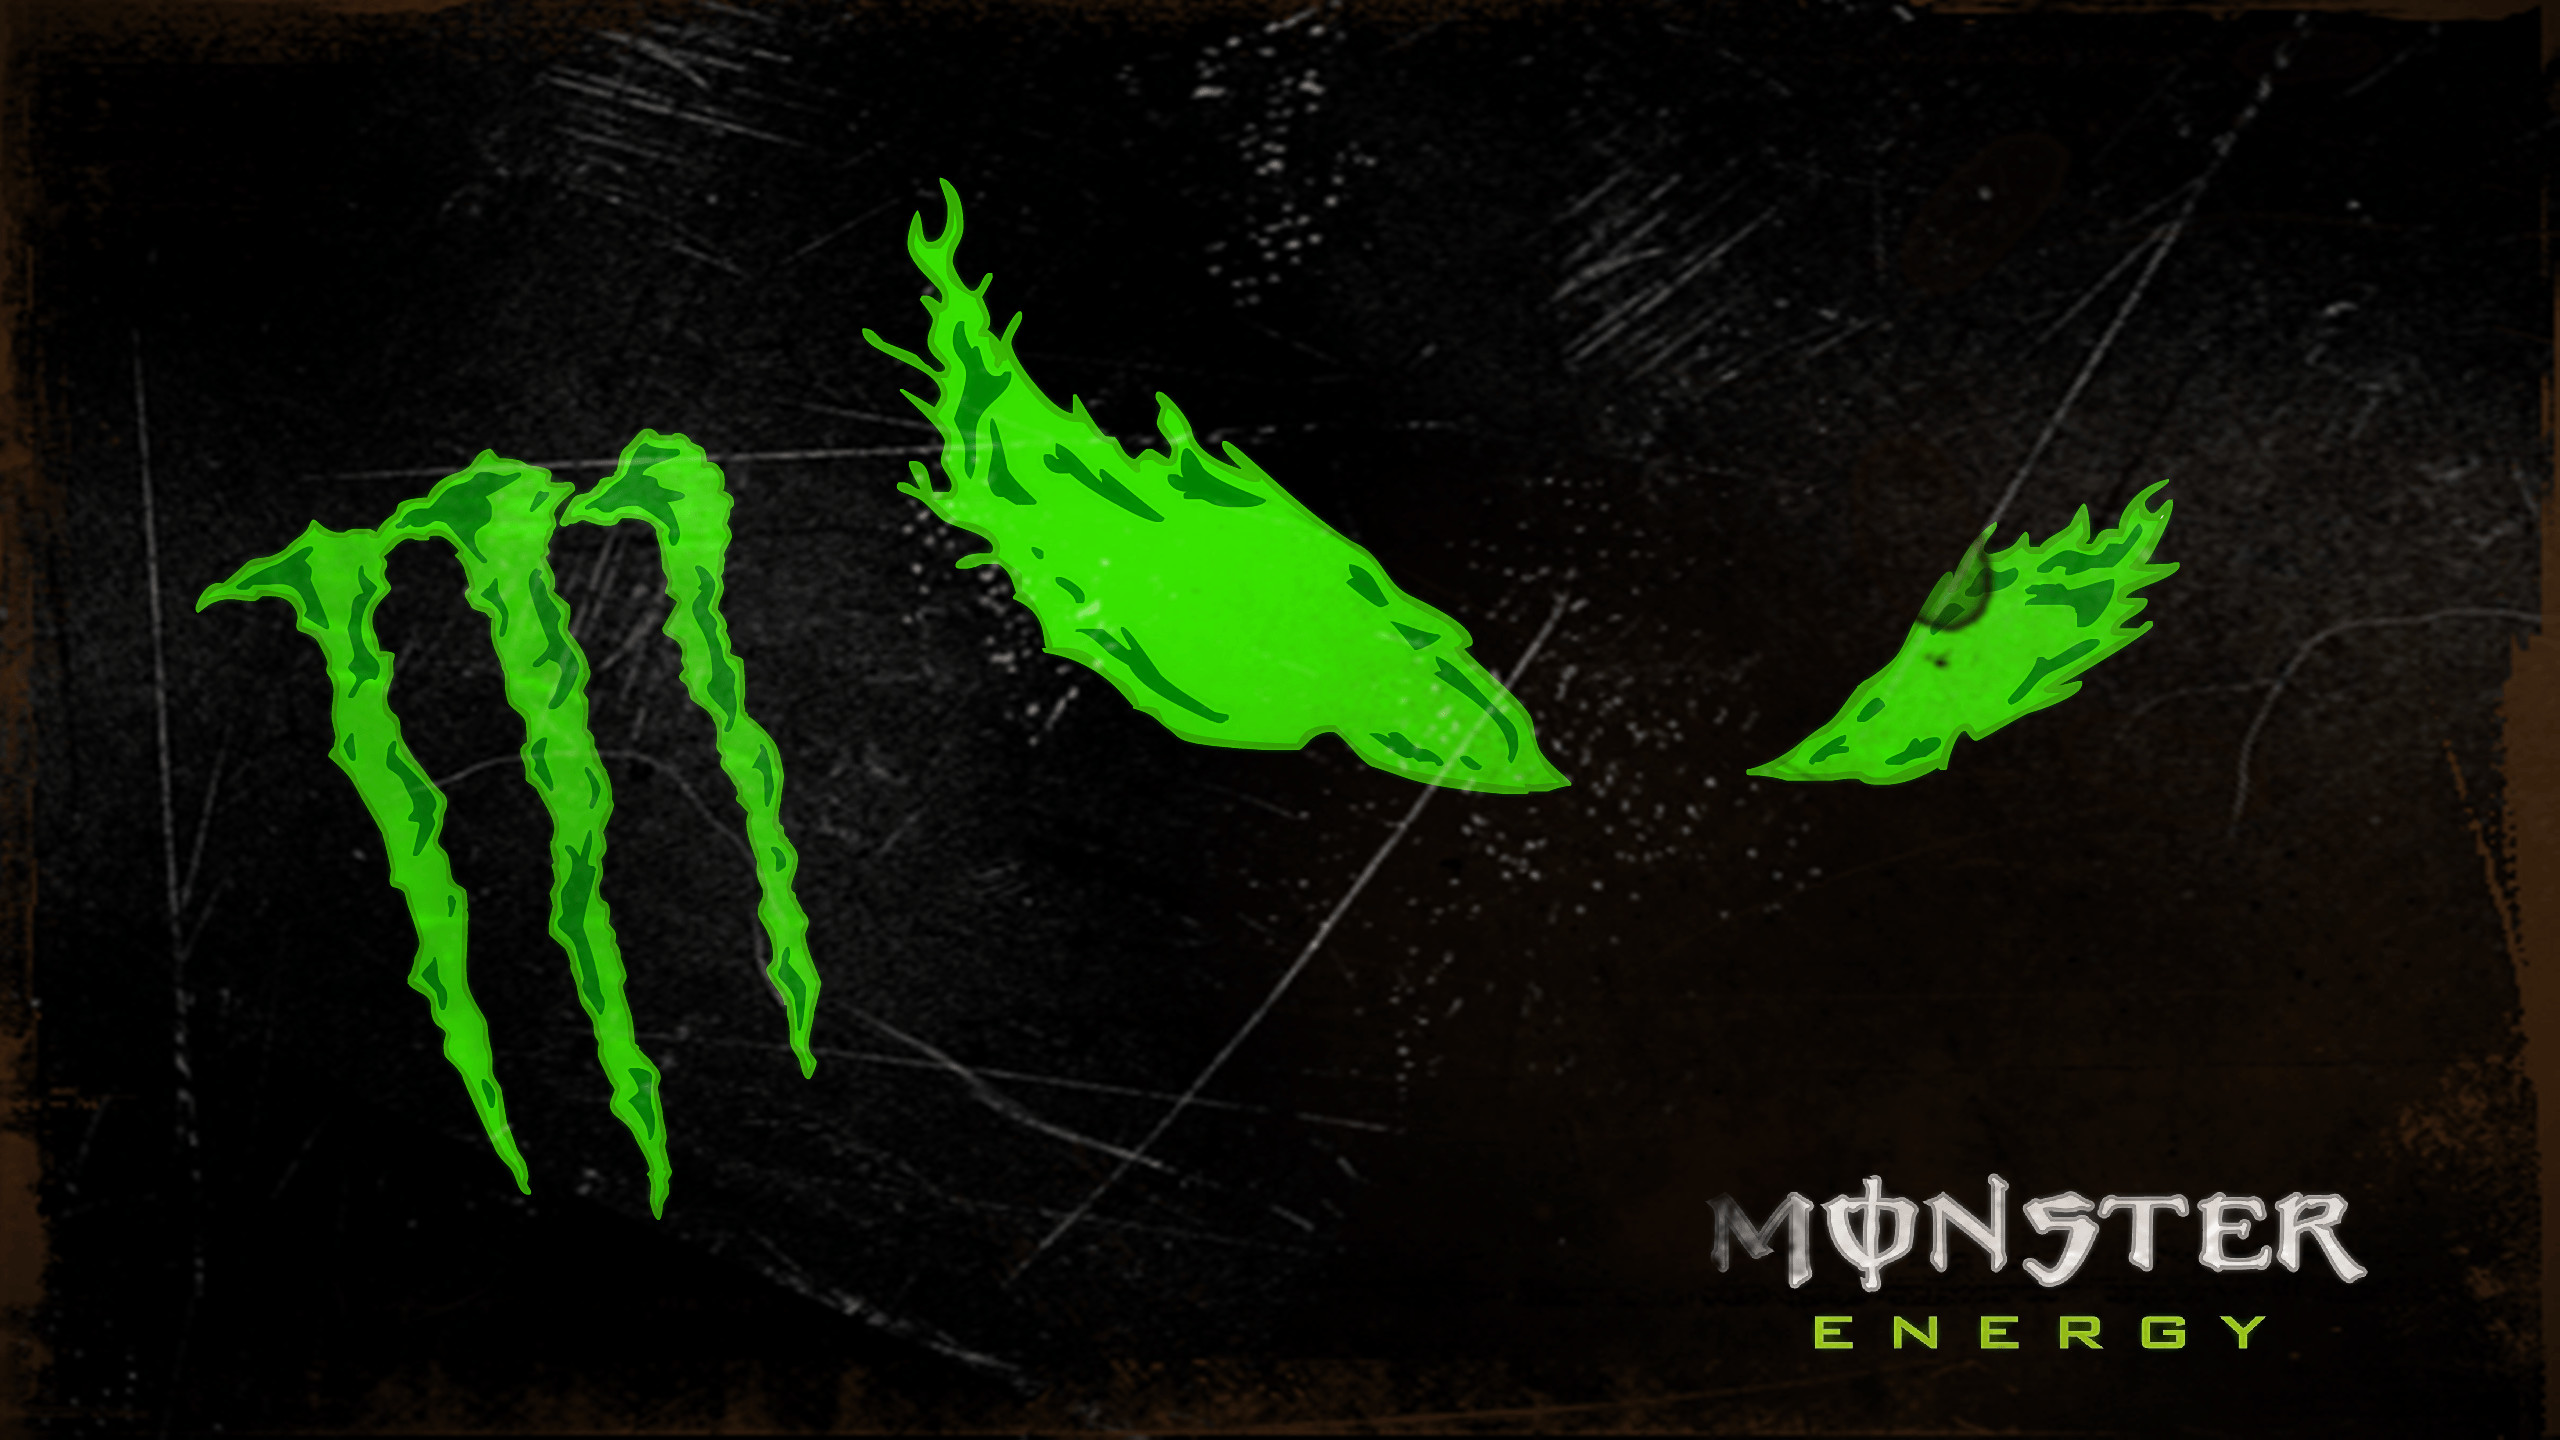 Nos Energy Drink Wallpaper 60 images 2560x1440